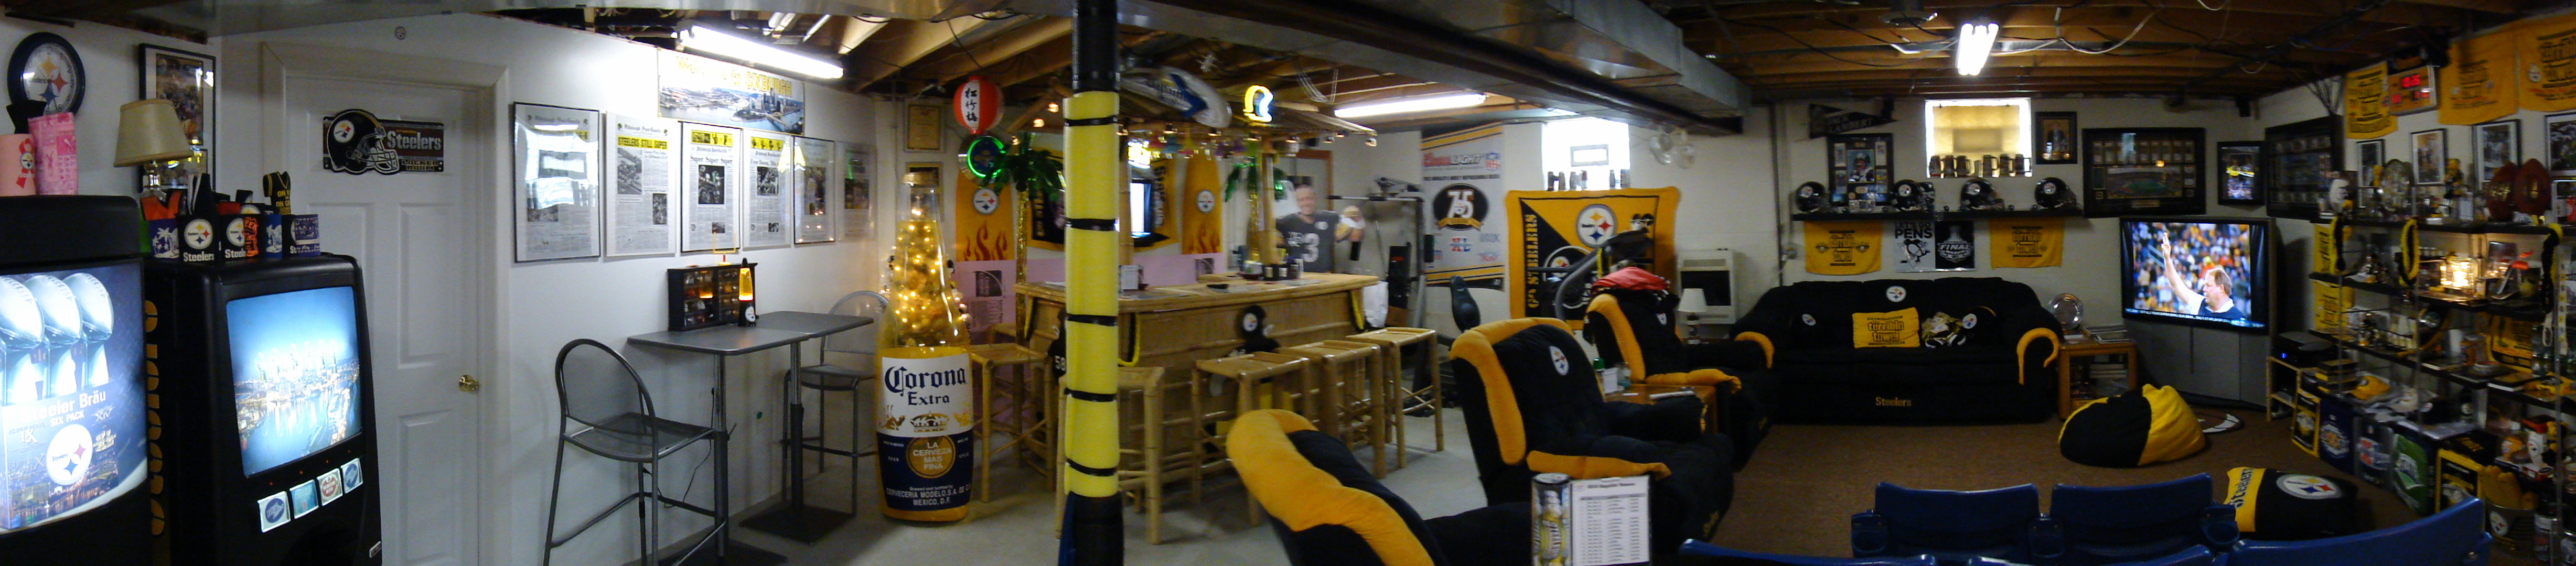 Best Man Caves Check out this Steelers MAN CAVE! CRAZY! : steelers